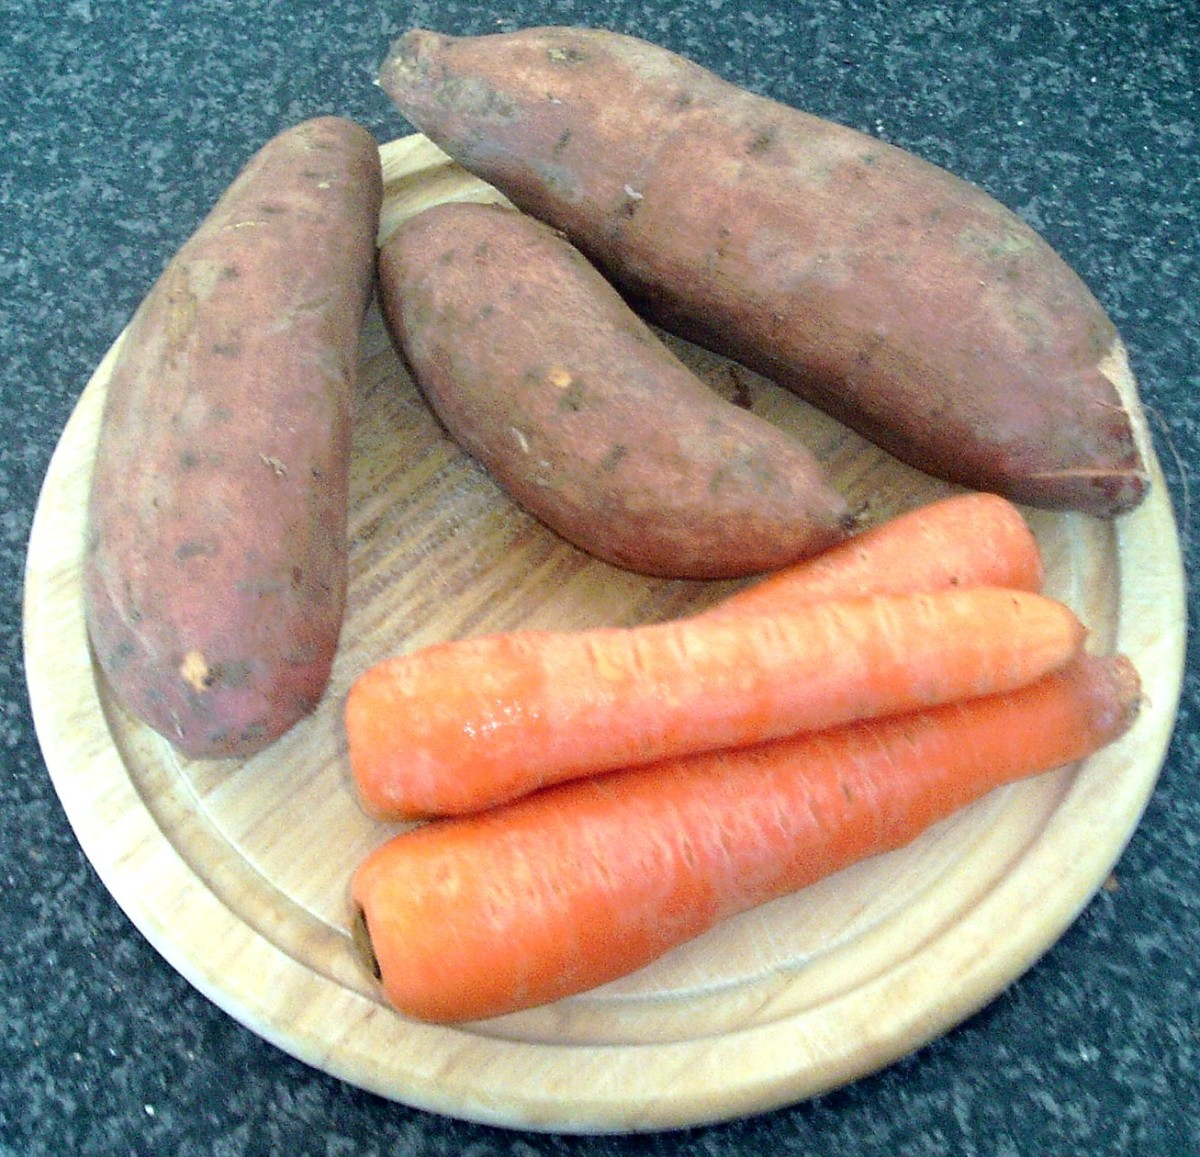 Medium sized sweet potatoes and carrots